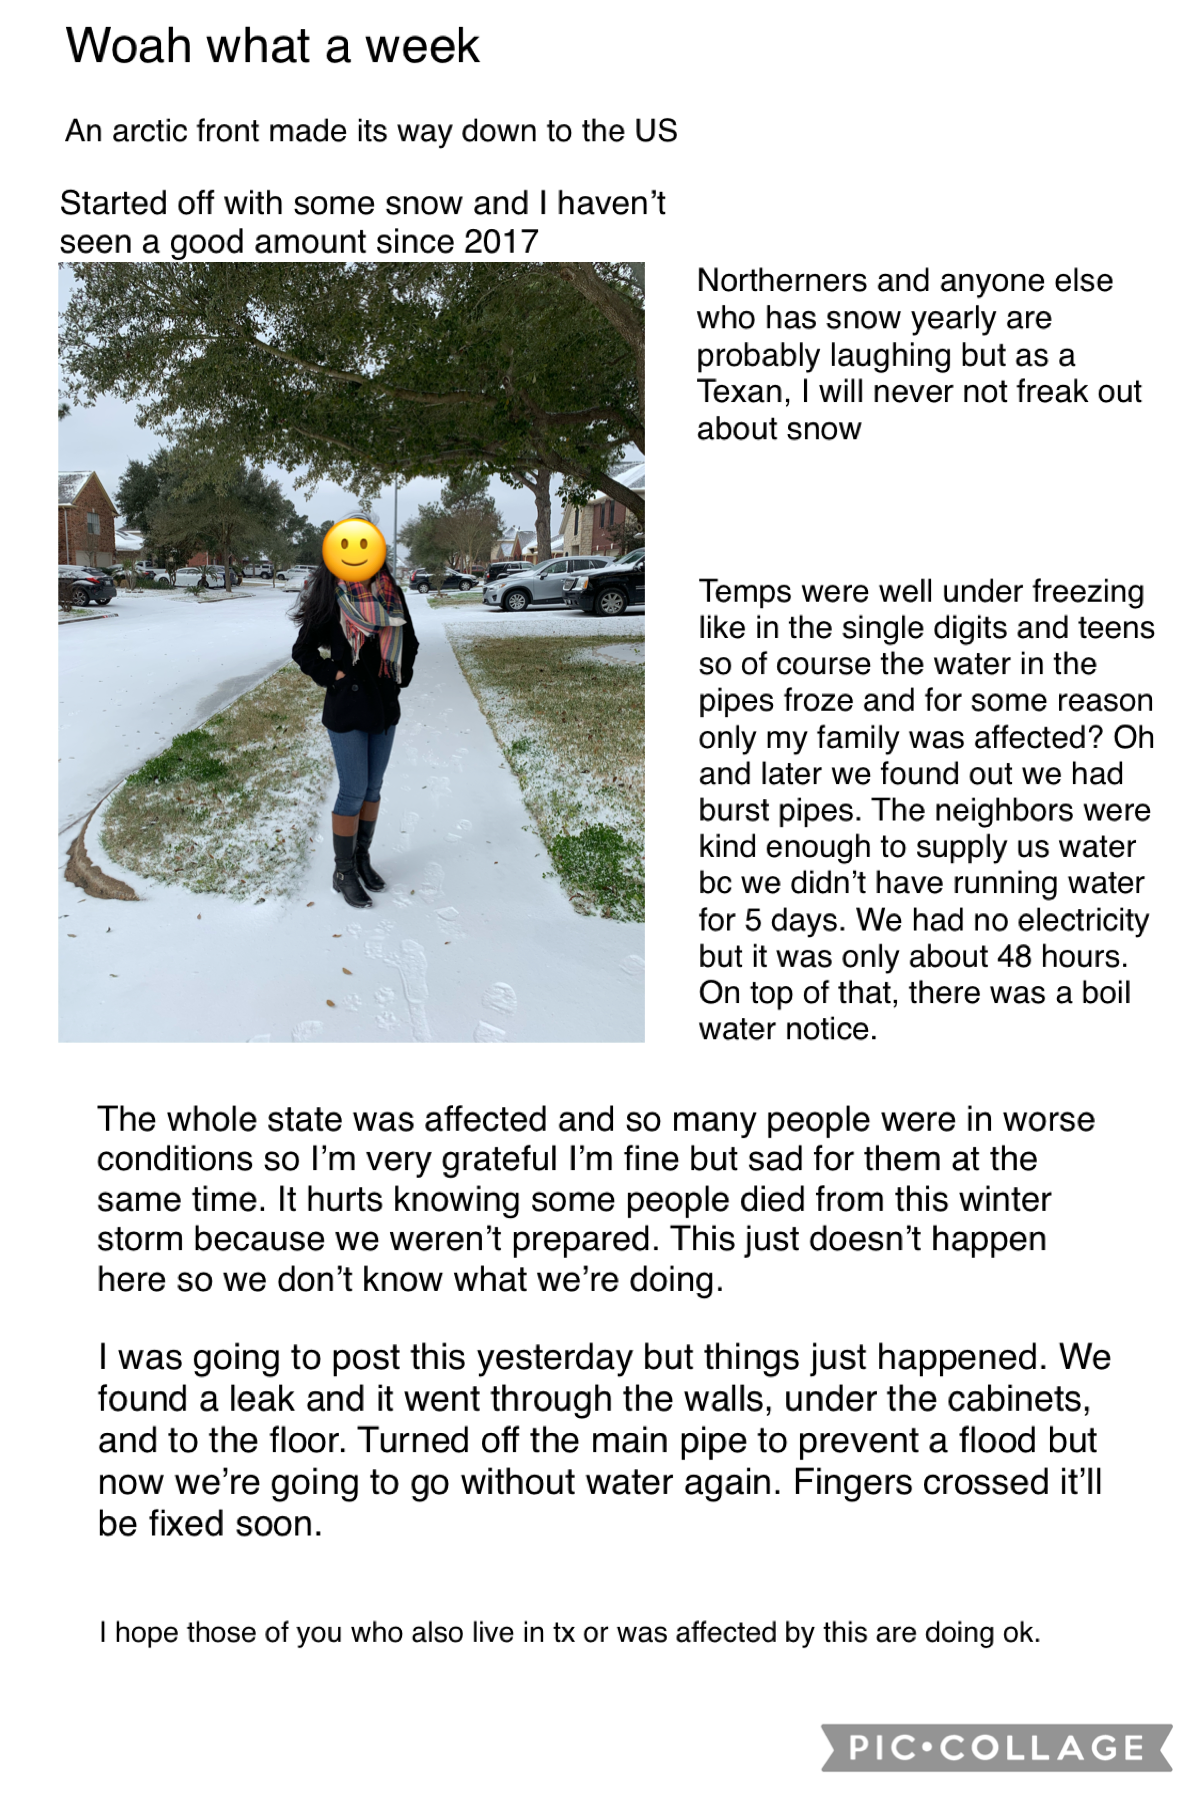 2/22/21 | Recent events that just made me reflect on how very fortunate I am. Not really 'losing' water, the ability to even get supplies to fix 2 pipe bursts, having a hot meal in my stomach every day etc.